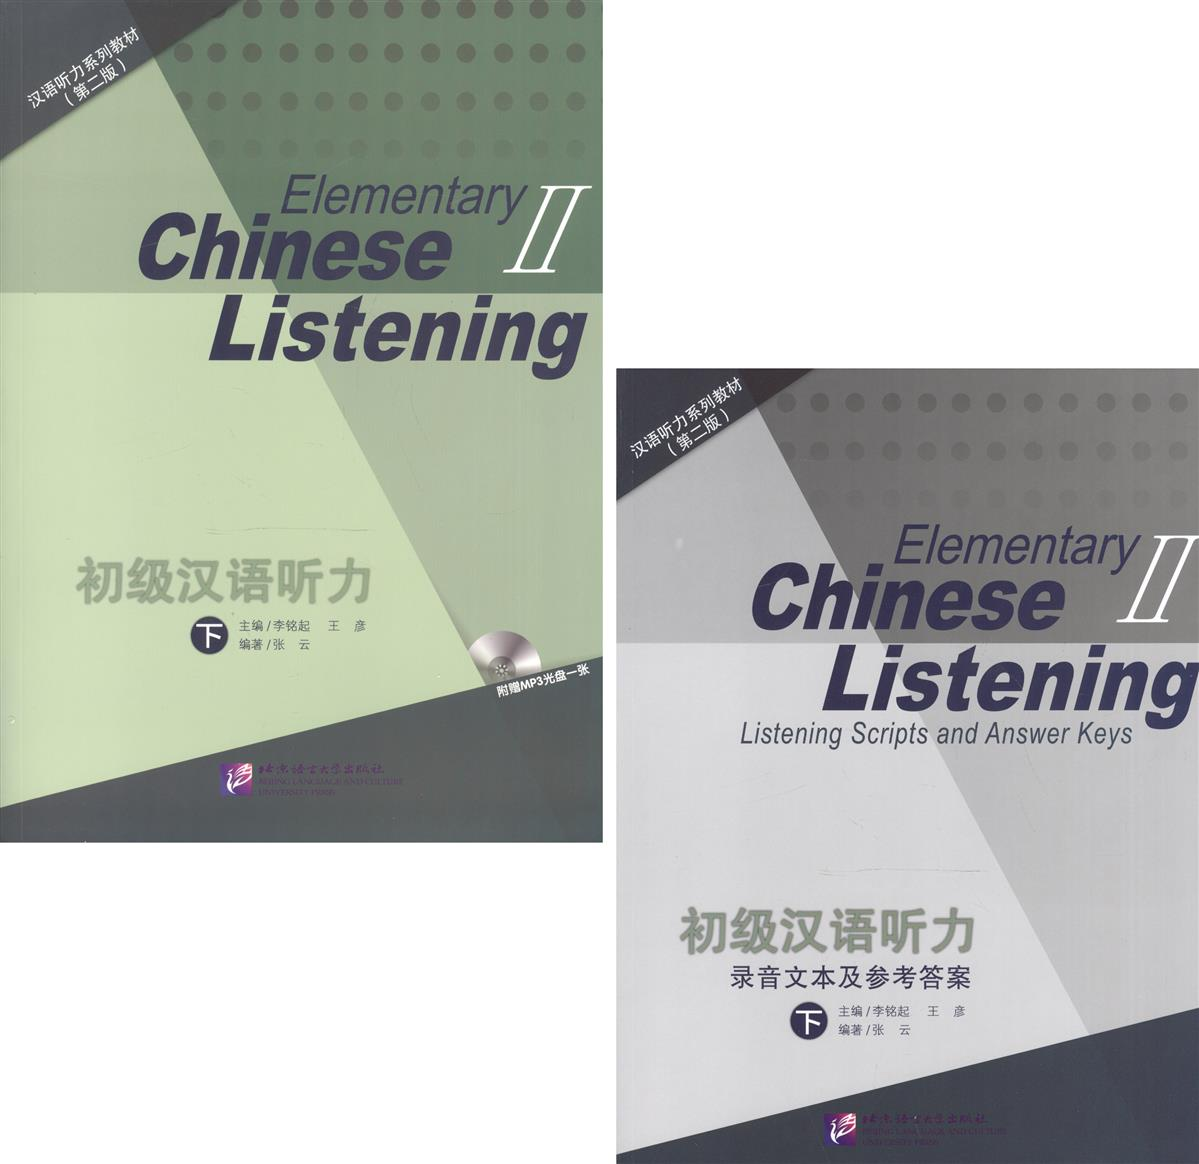 Li Mingqi, Wang Yan Listening to Chinese. Elementary II (2nd Edition) / Listening Scripts and Answer Keys = Курс по аудированию китайского языка. Начальный уровень. Часть 2 (+MP3) (комплект из 2 книг + MP3) developing chinese elementary listening course 2 2nd ed w mp3 learn chinese listening books